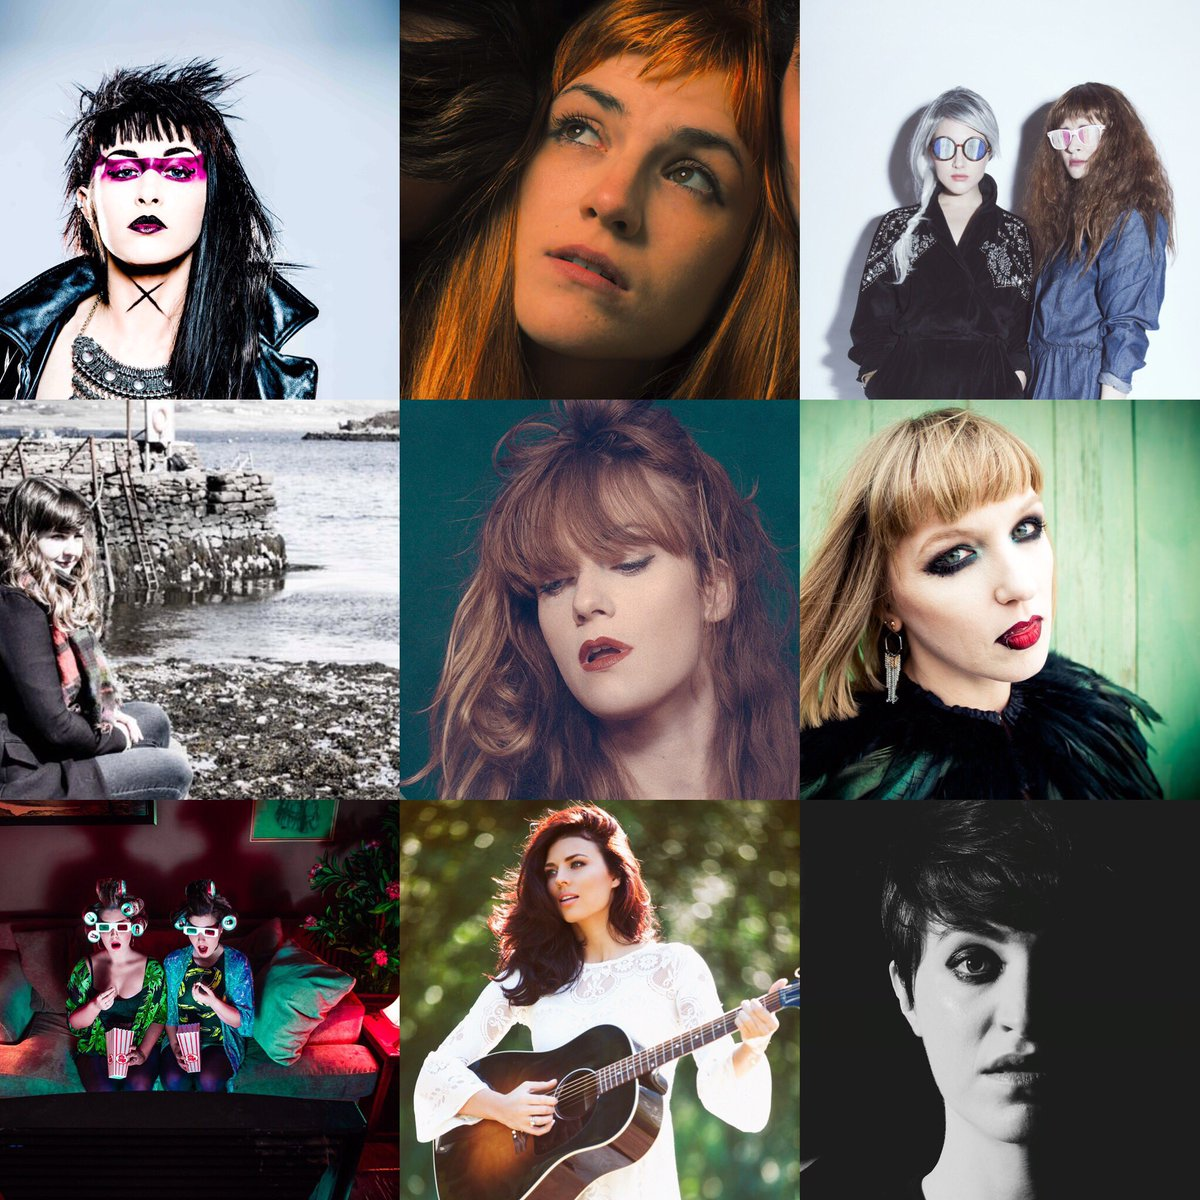 Very proud to be working with some brilliant female fronted / solo acts via @abof. #InternationalWomensDay https://t.co/vDGZxgju5T